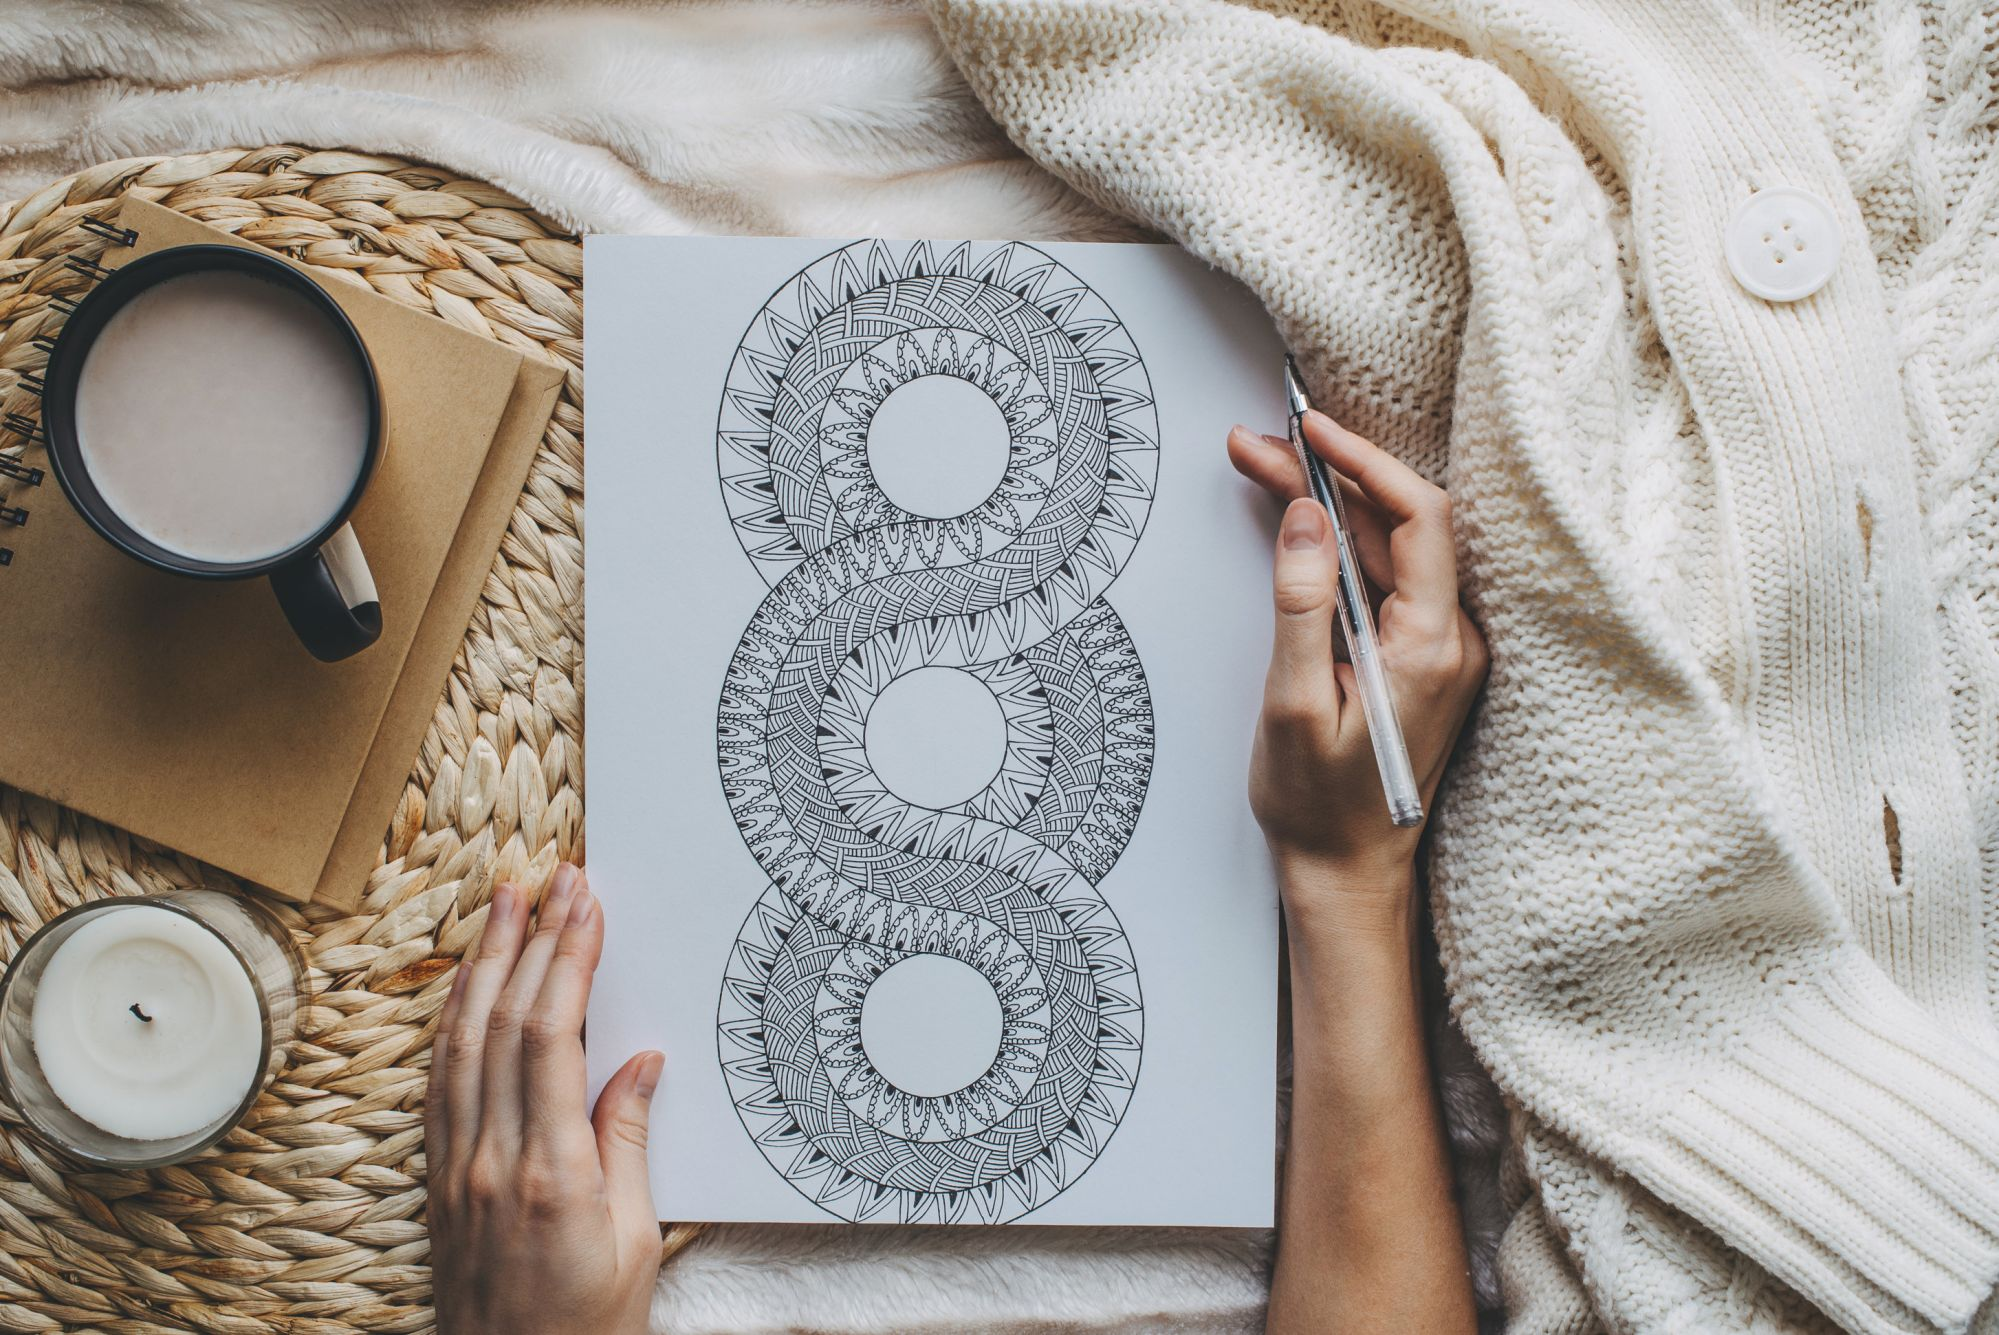 Mandalas sketch in scandinavian style, still-life with home decor